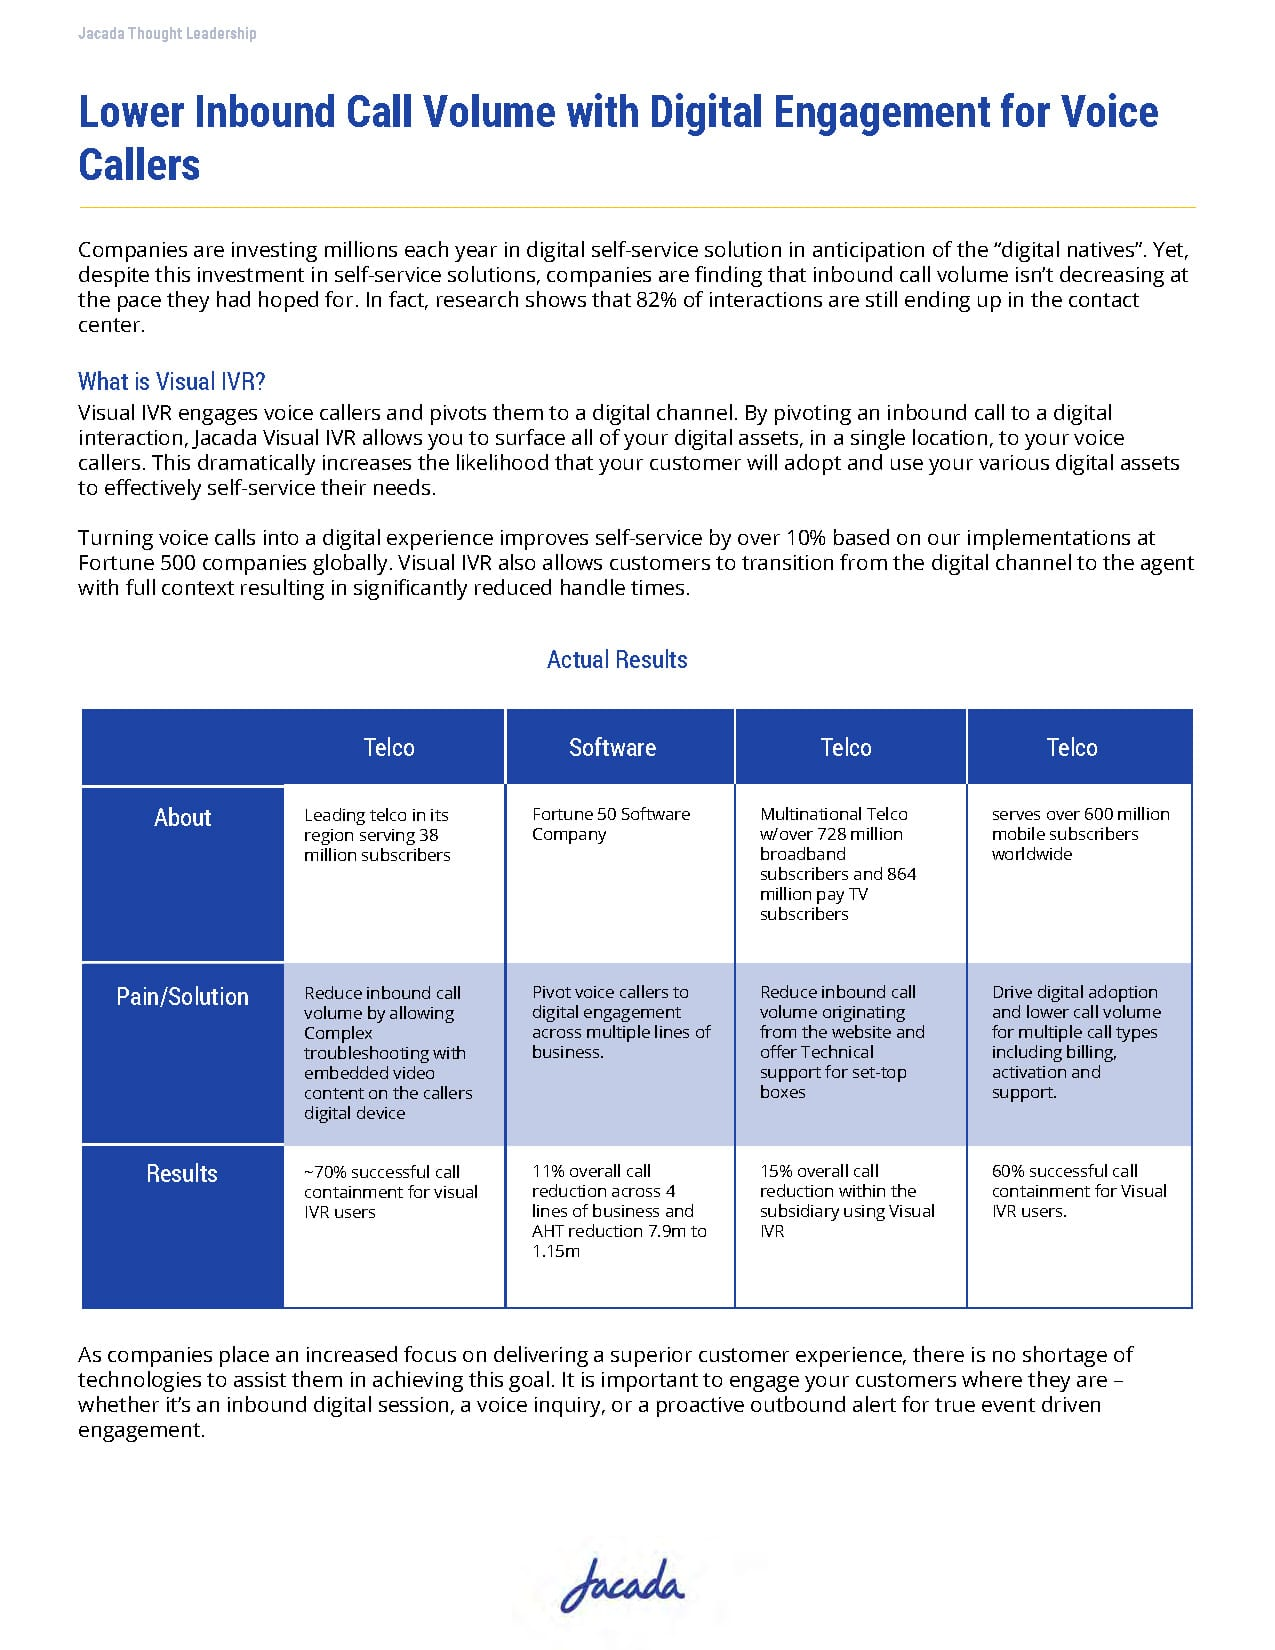 The-2017-US-Contact-Center-Decision-Makers-Guide-MOBILE_Page_20